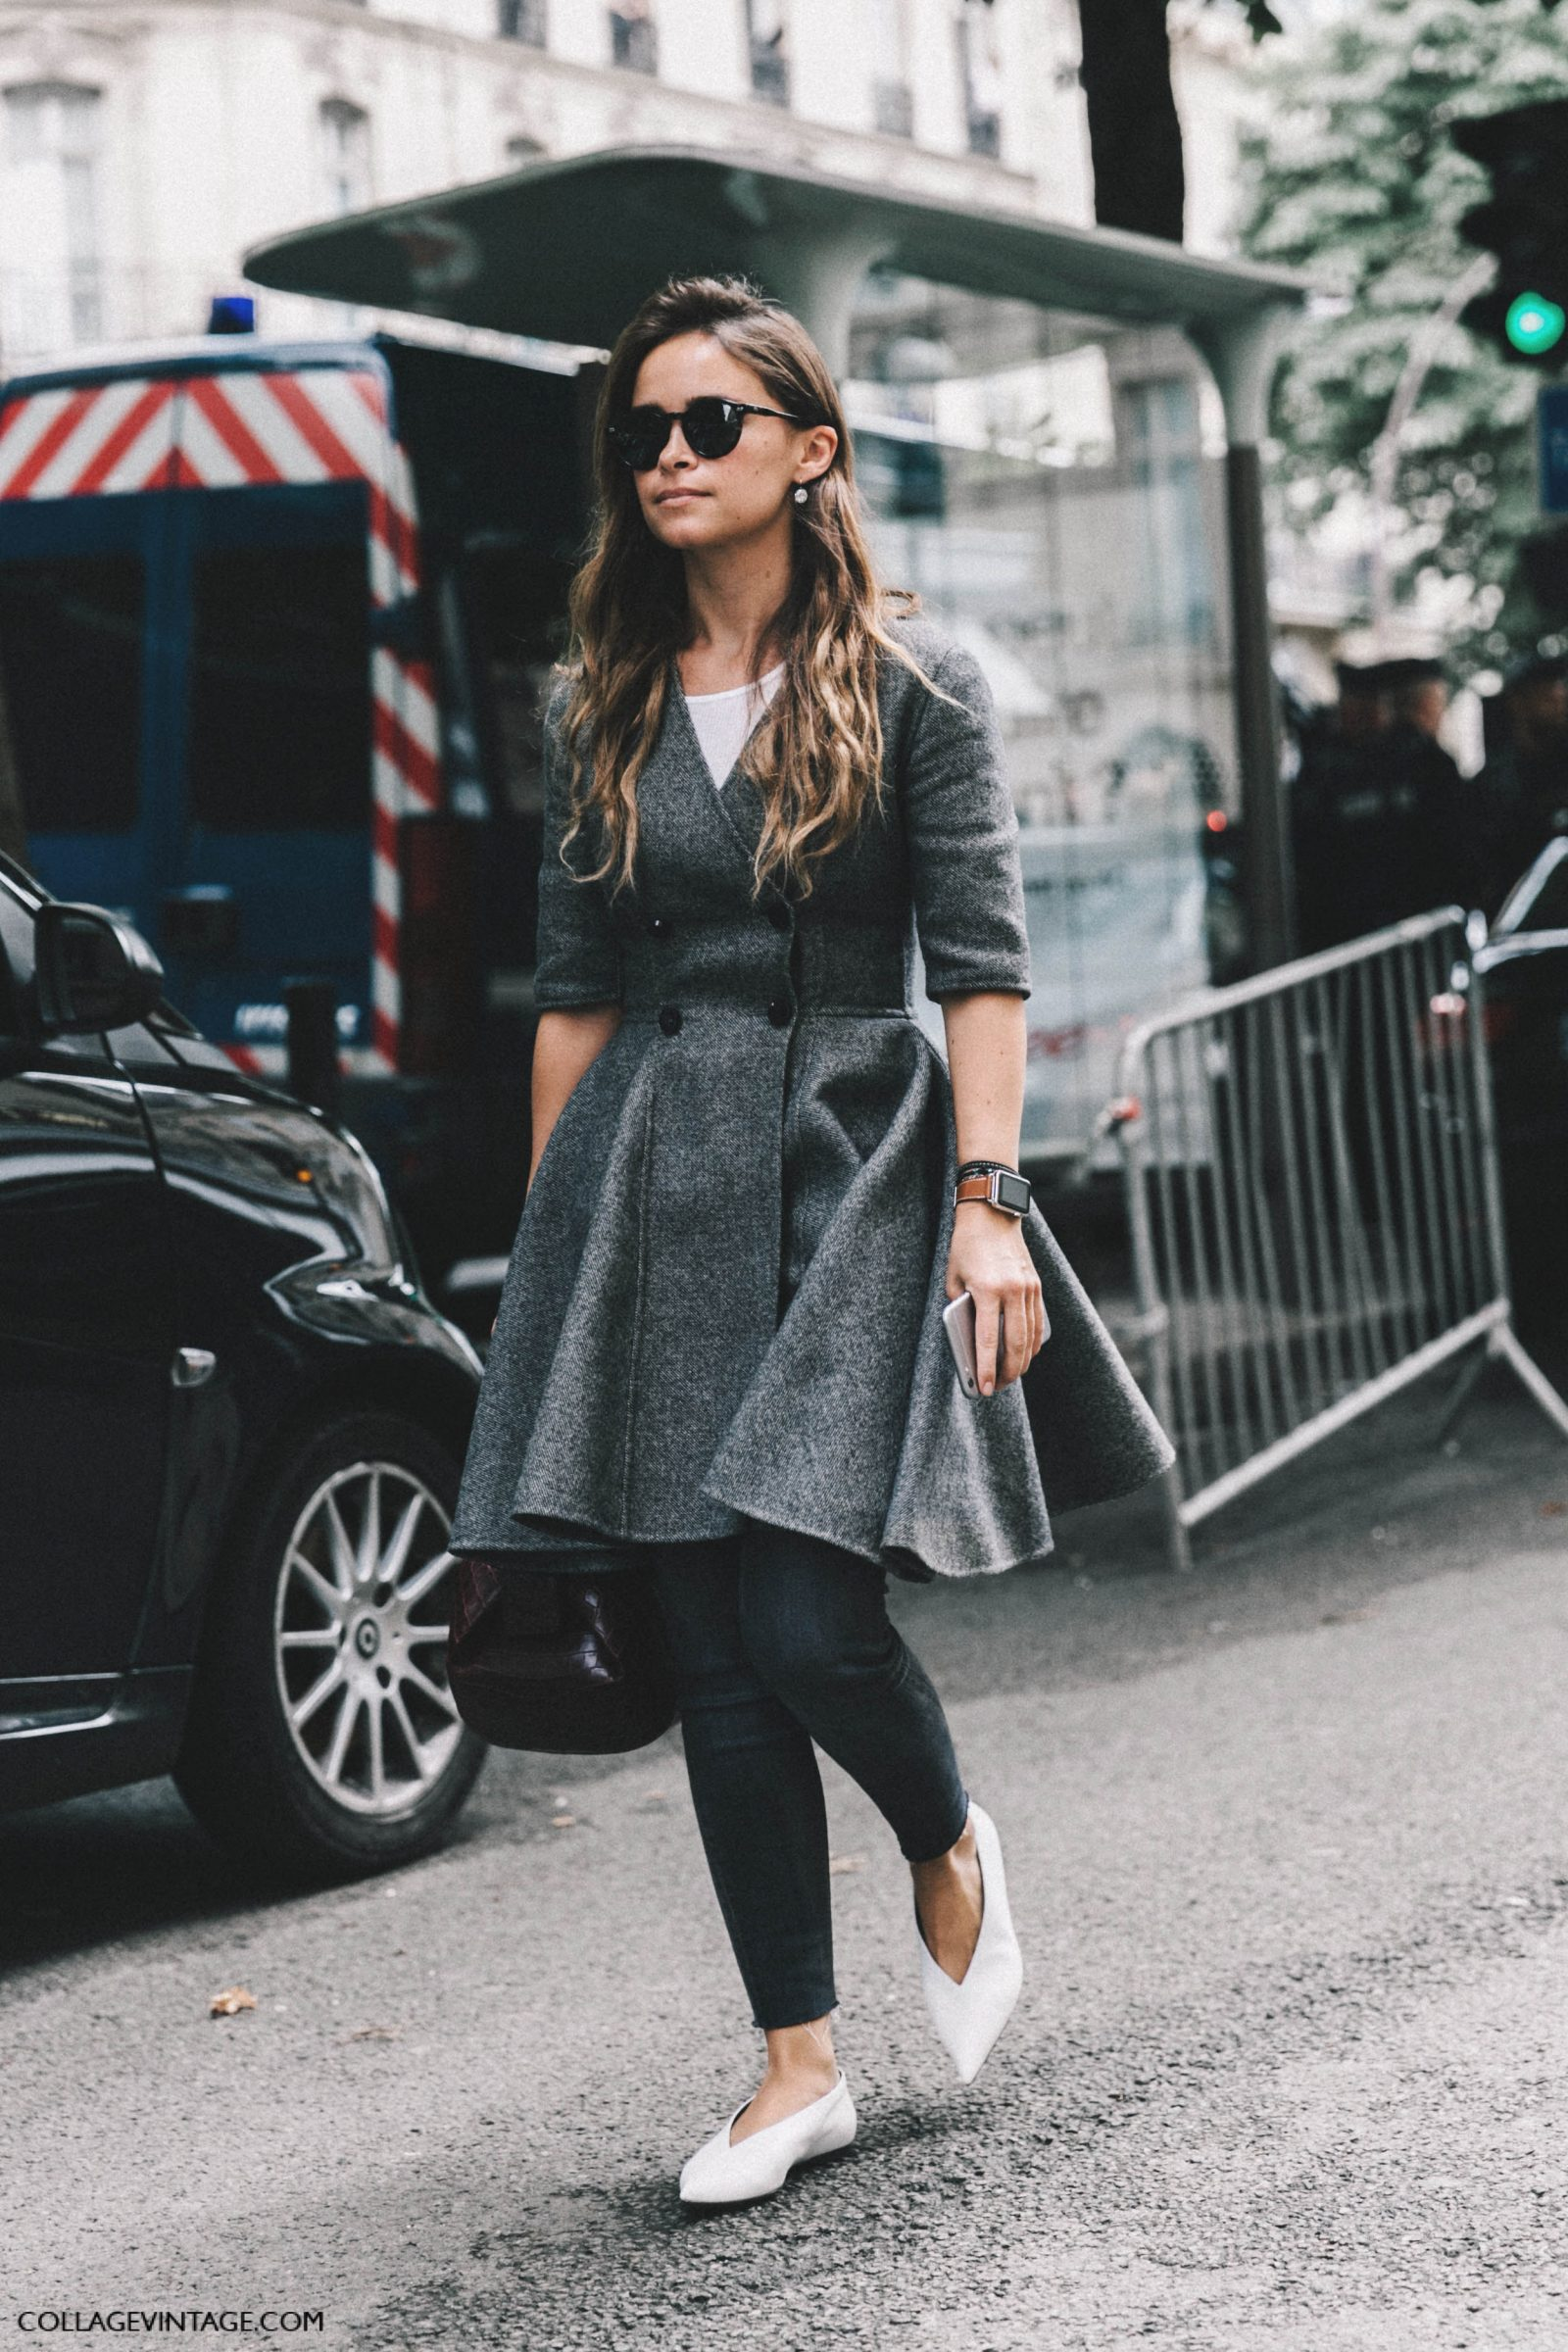 Paris_Couture_Fashion_Week-Collage_Vintage-Street_Style-101